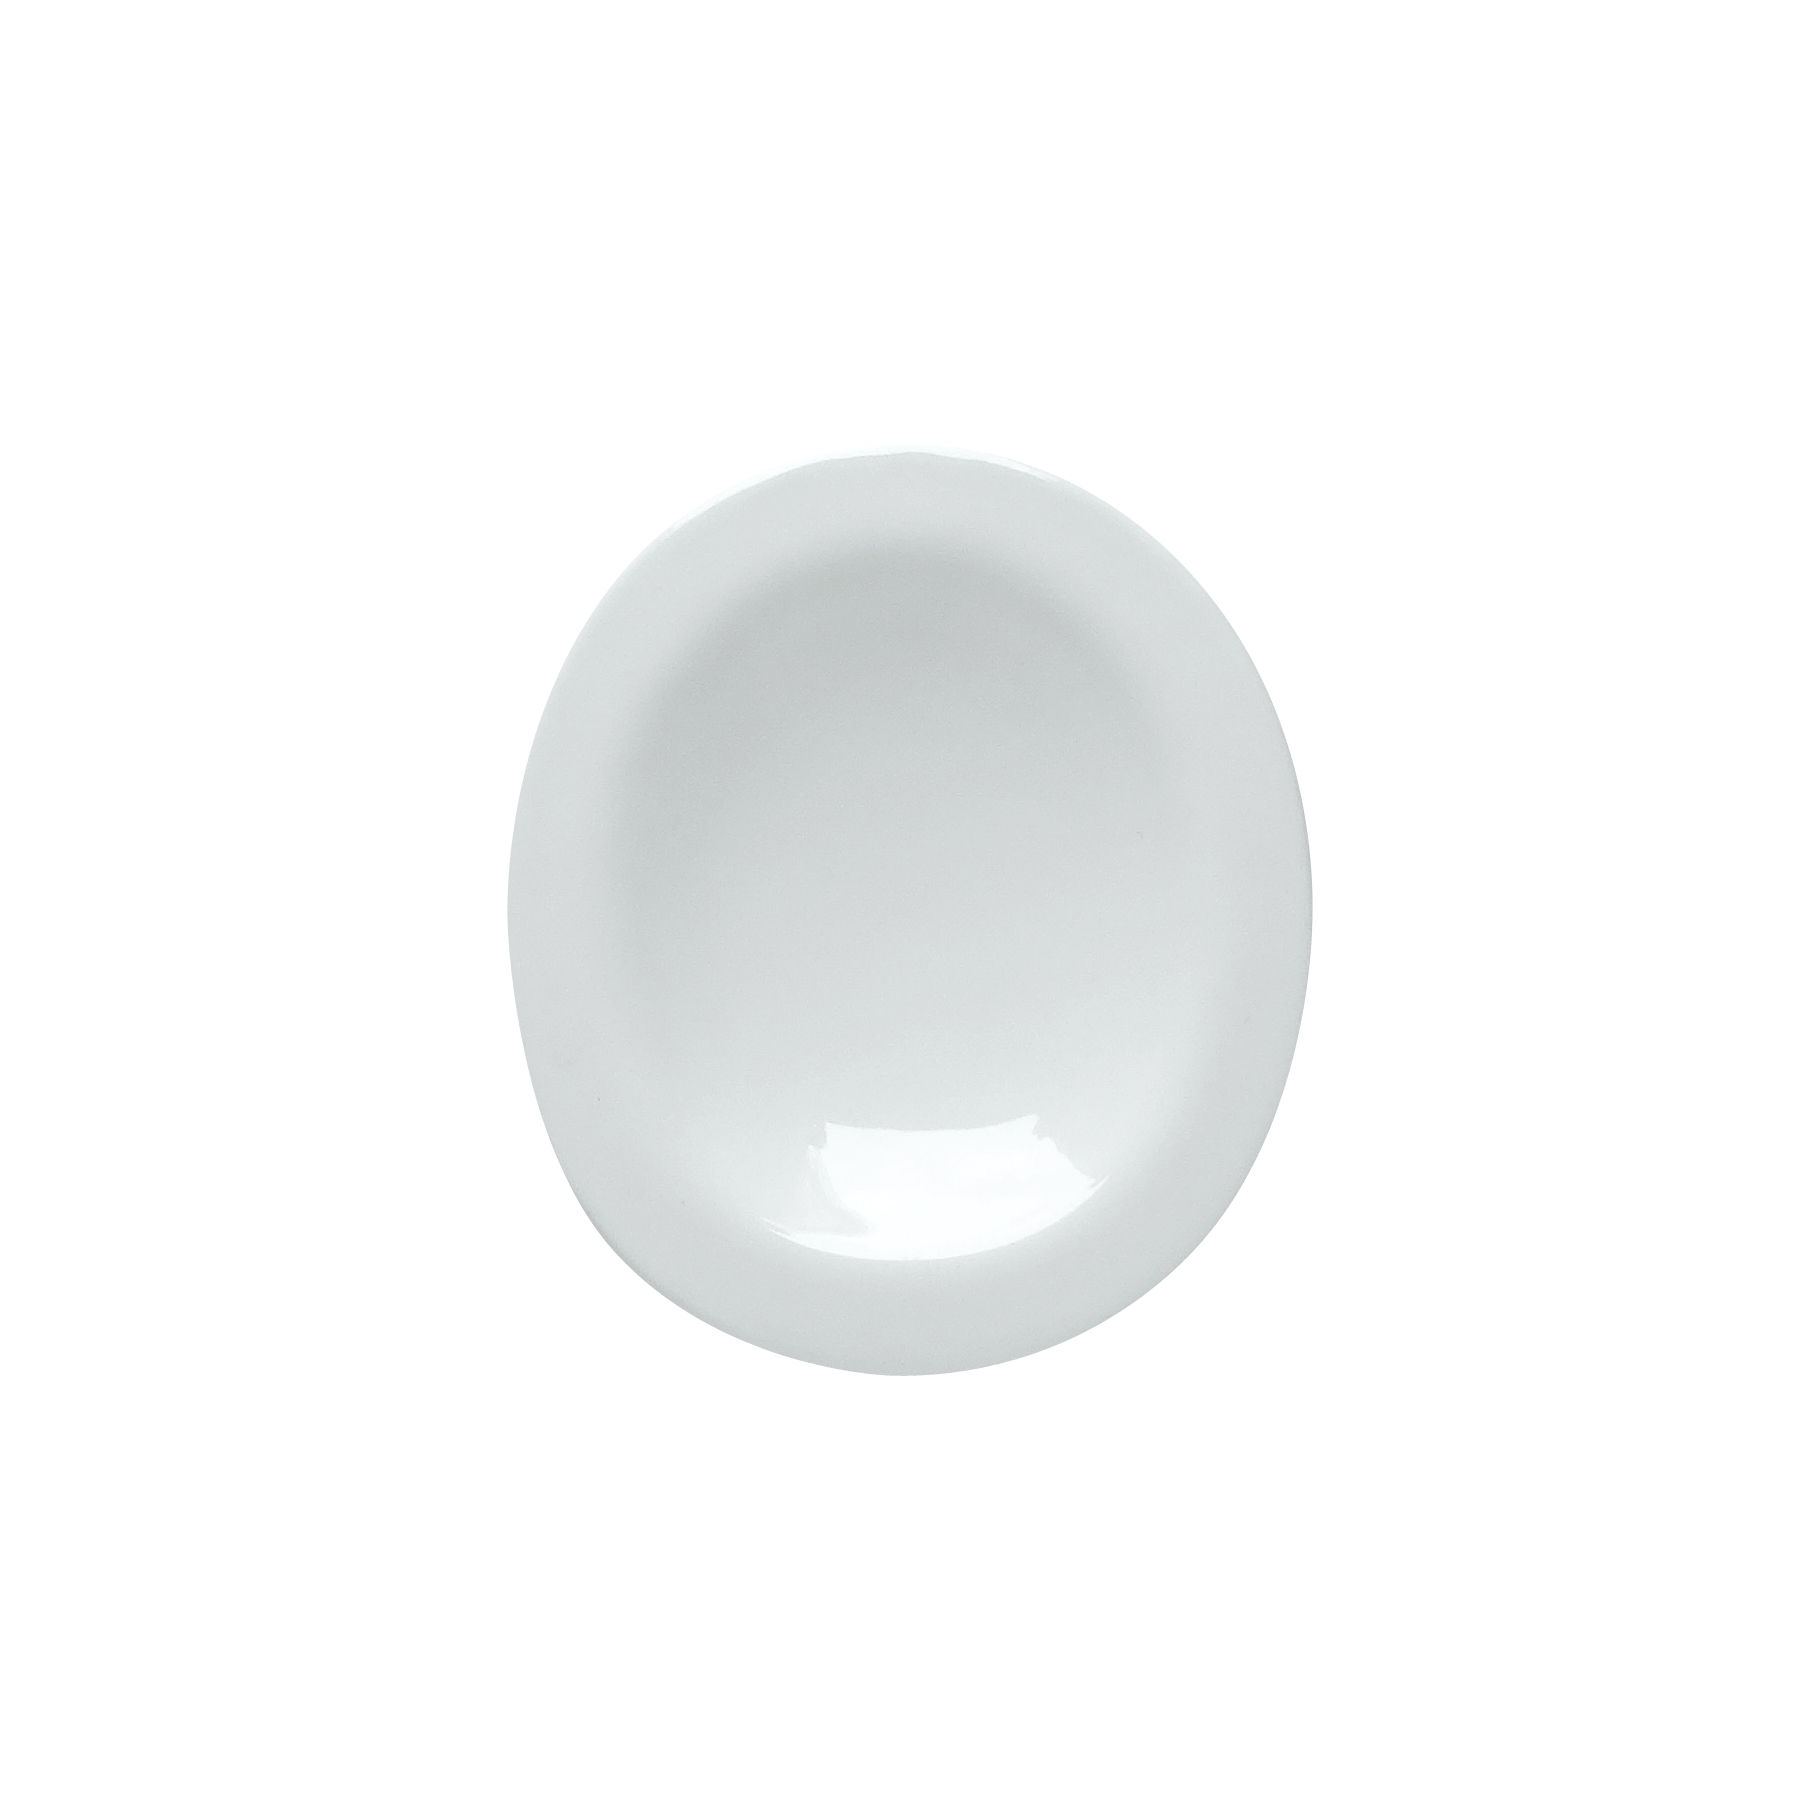 Tableware - Bowls - Jo 1 Small dish - 7 x 8 cm by cookplay - Shiny white - Enamelled china